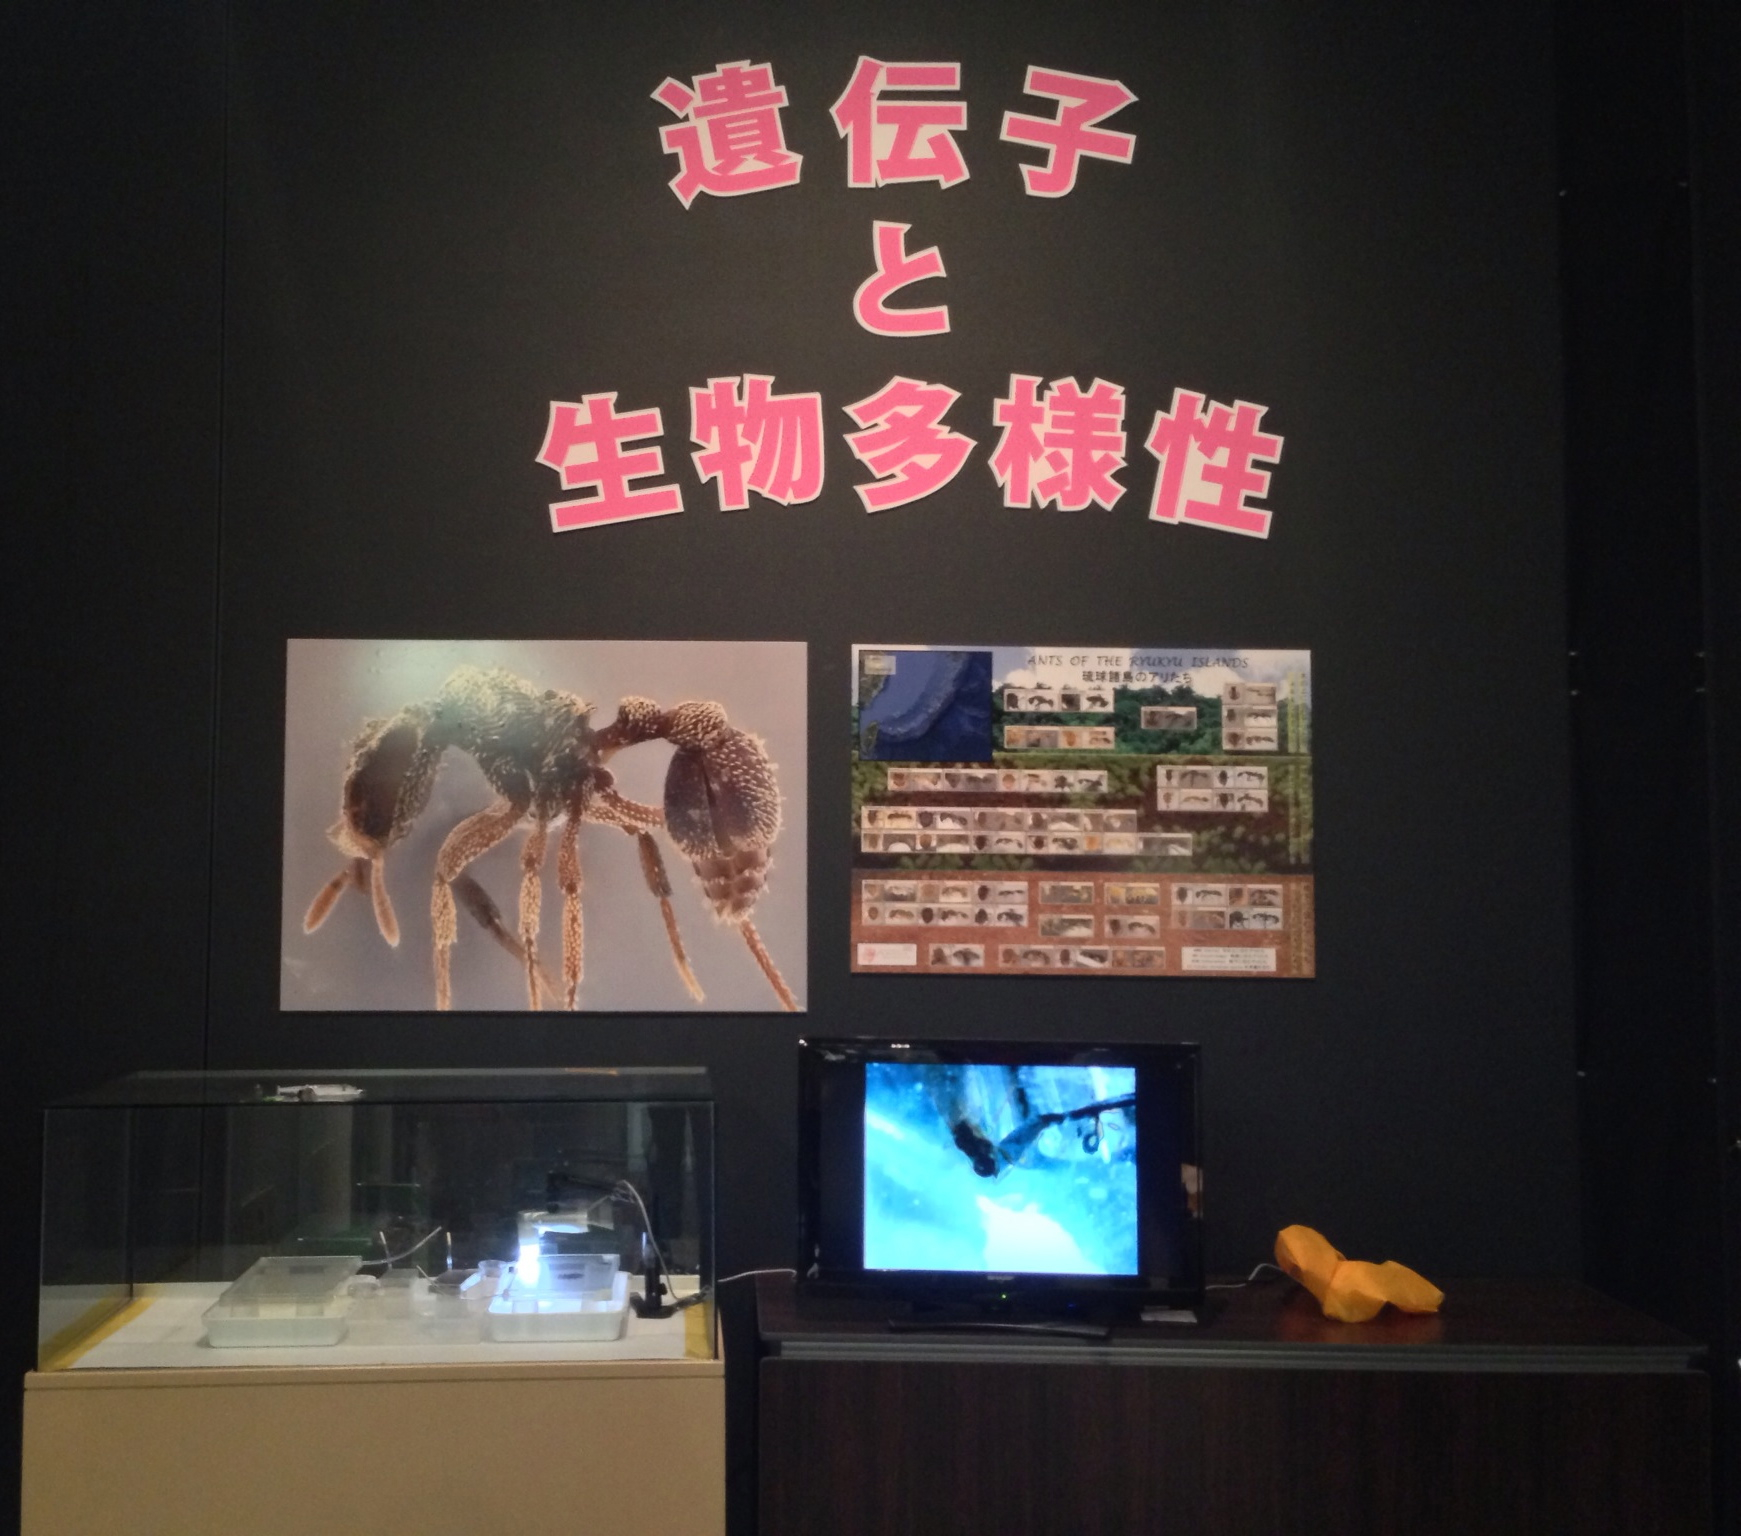 Ant exhibit at the Okinawa Prefectural Museum.